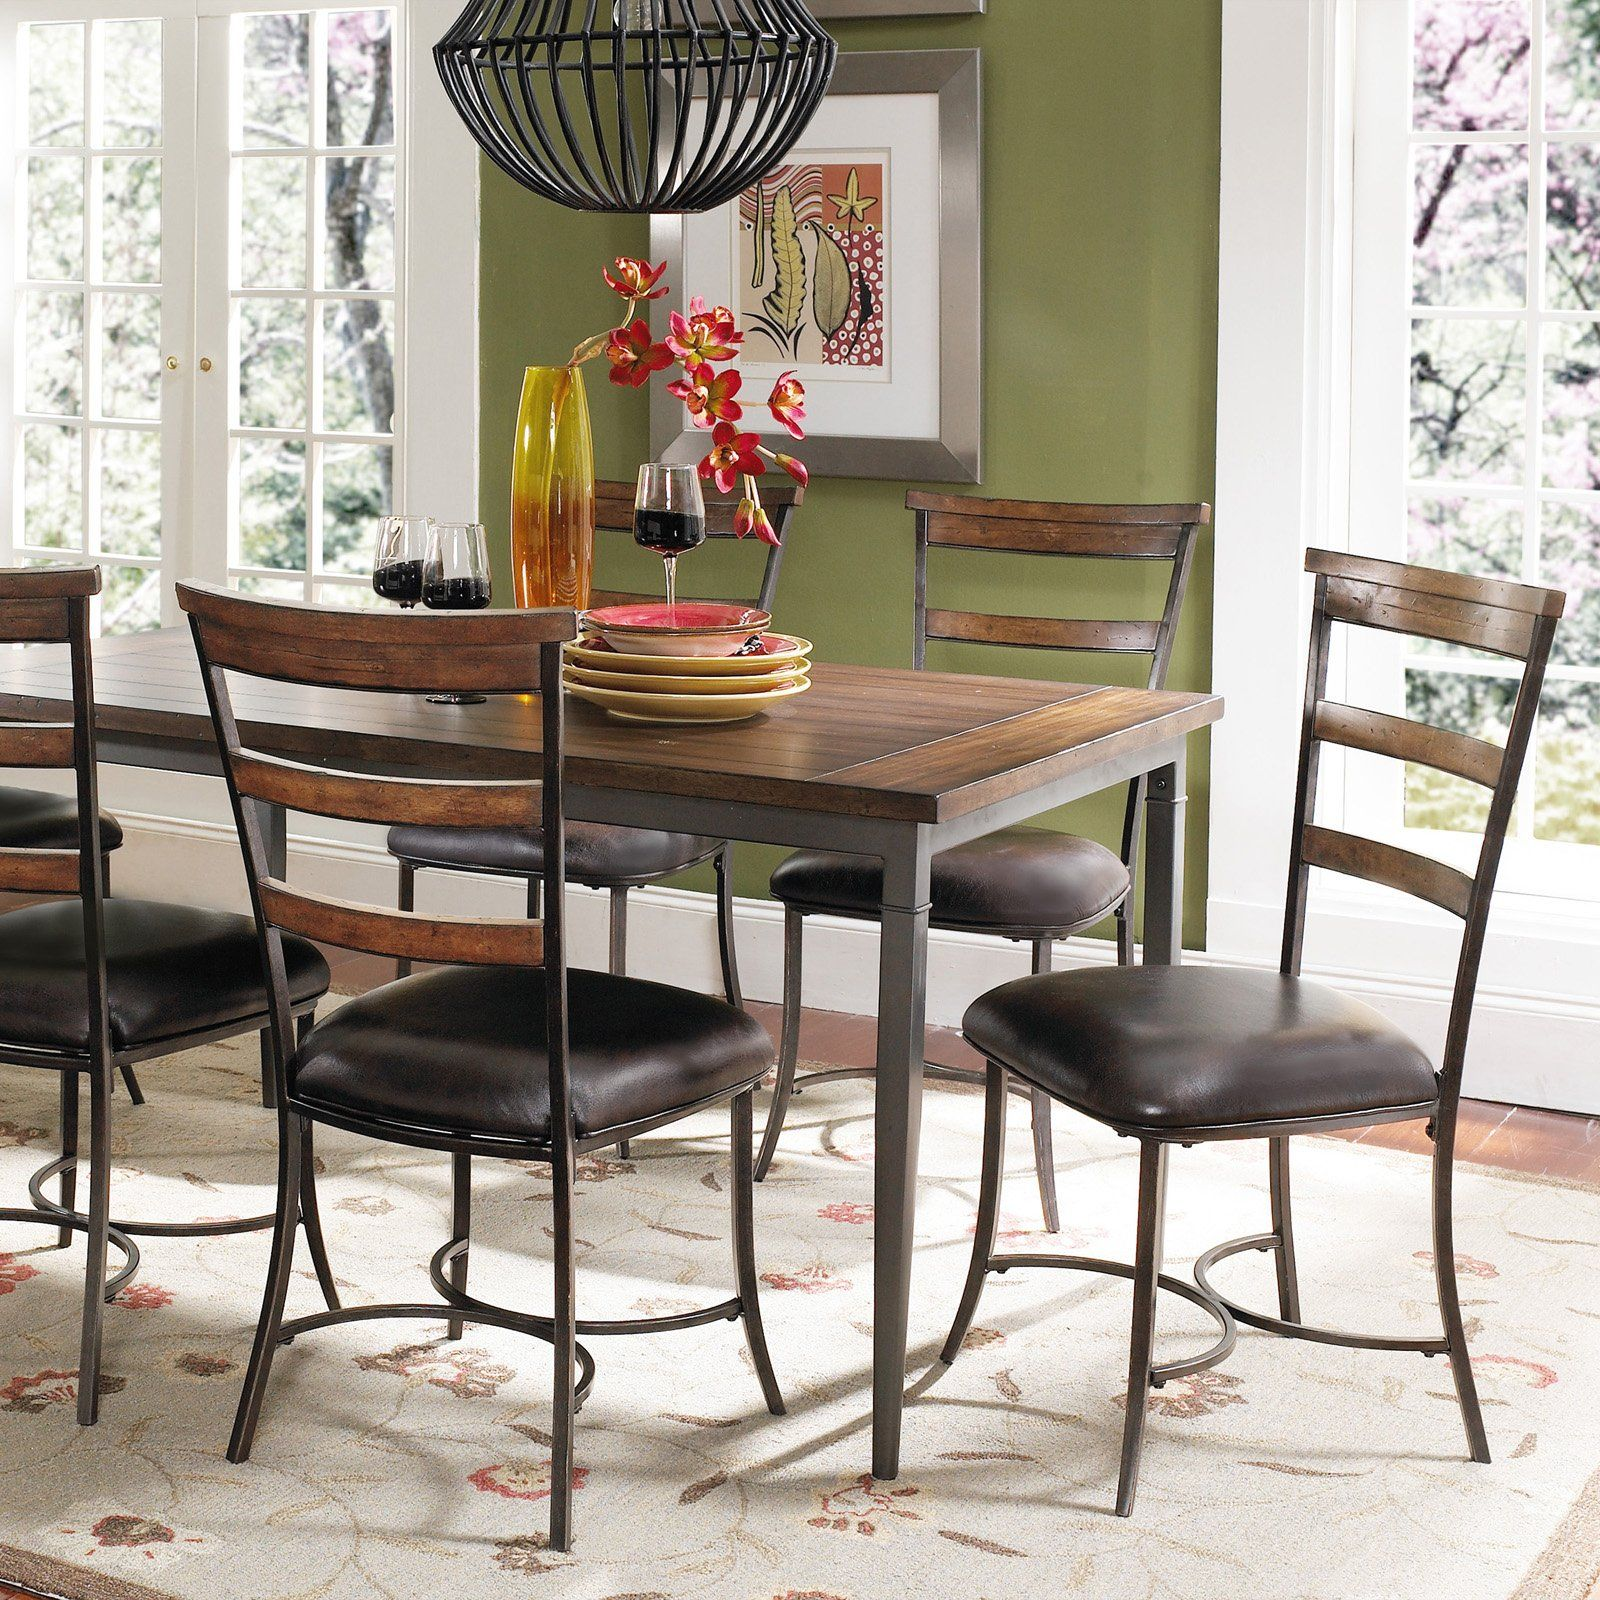 Hillsdale Cameron 7 Pc Rectangle Wood And Metal Dining Table Set With Ladder Back Chairs Metal Dining Table Dining Table In Kitchen Ladder Back Dining Chairs